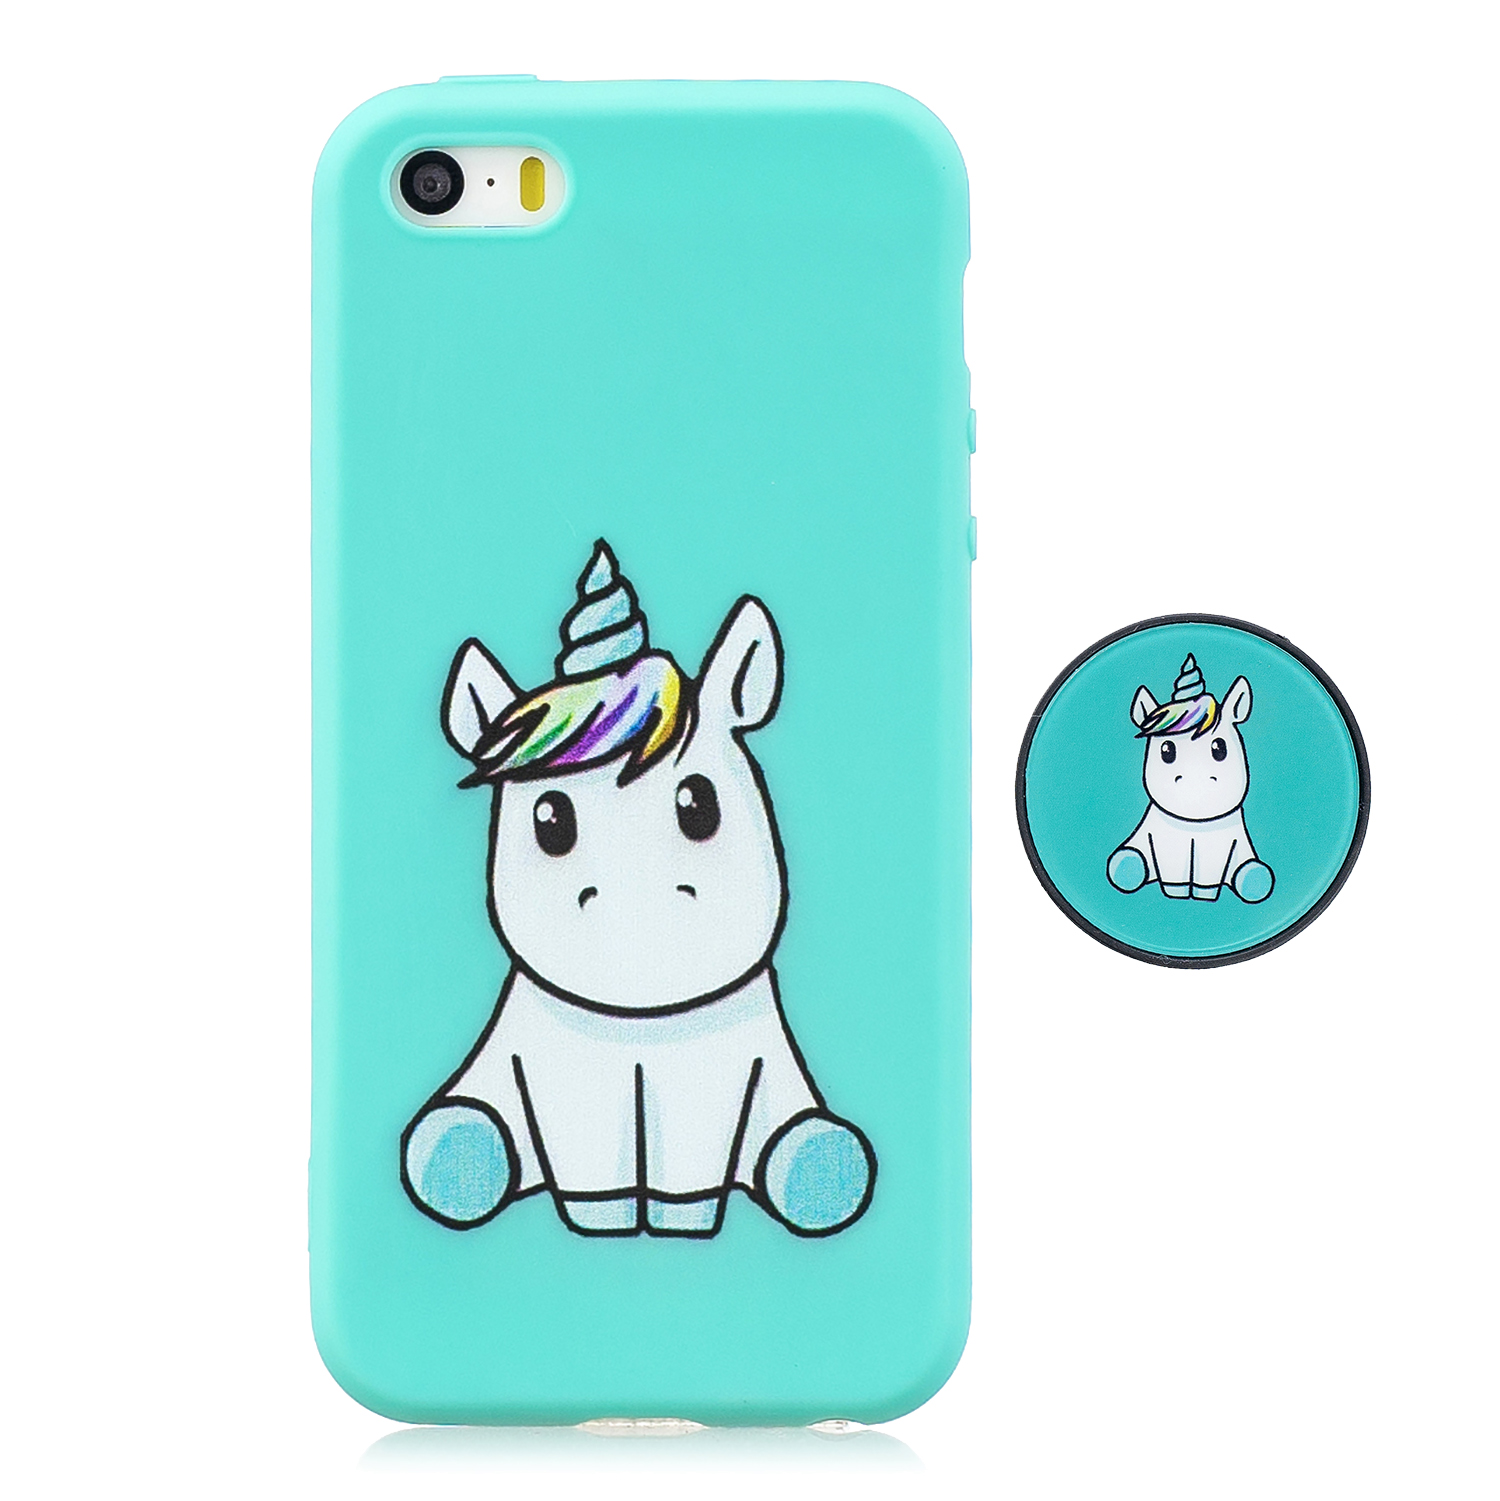 For iPhone 5 5S SE Phone Cases TPU Full Cover Cute Cartoon Painted Case Girls Mobile Phone Cover 5